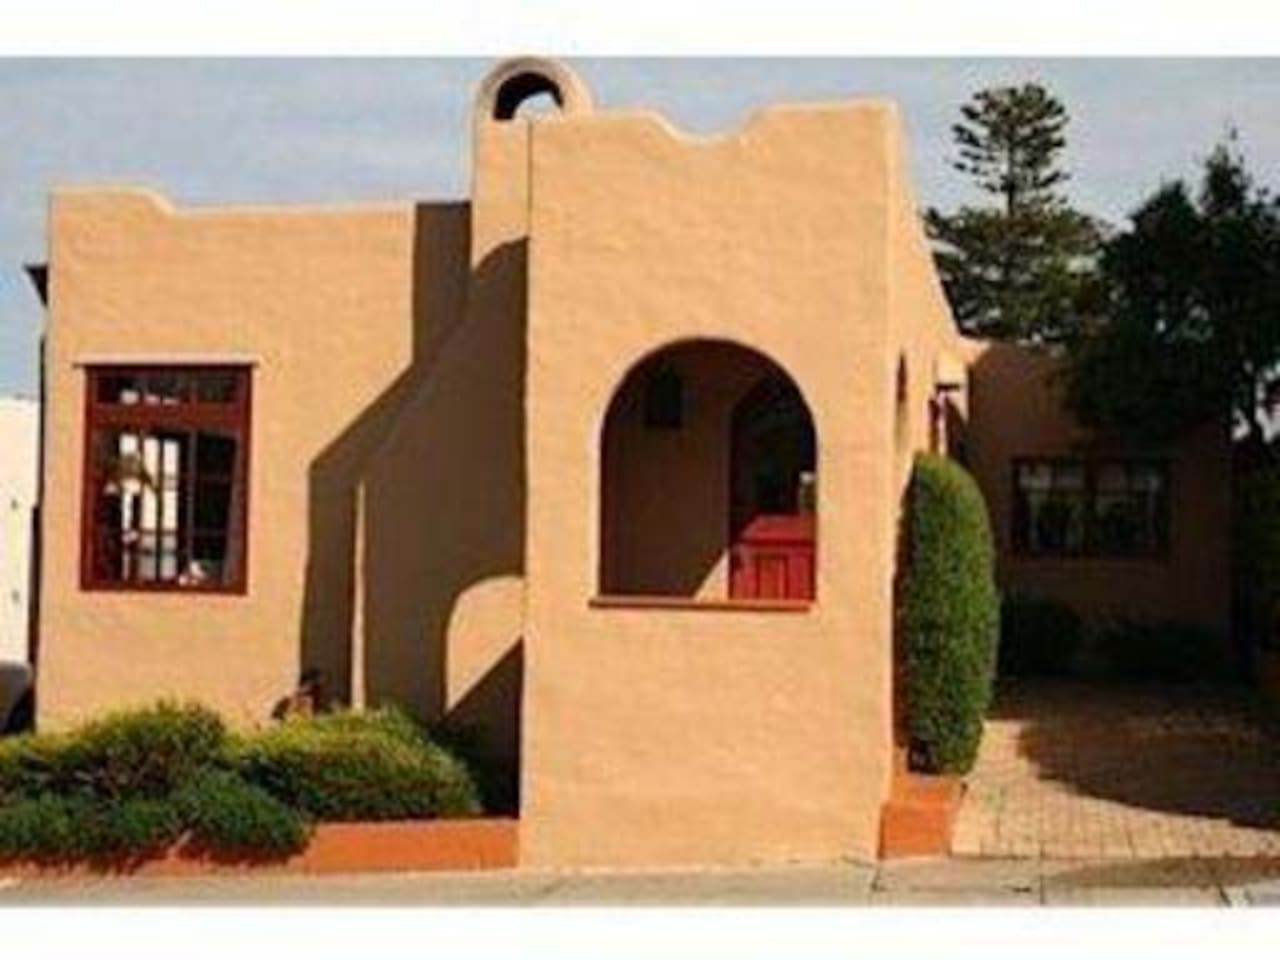 Beautifully remodeled and updated spanish villa style home with ocean view.